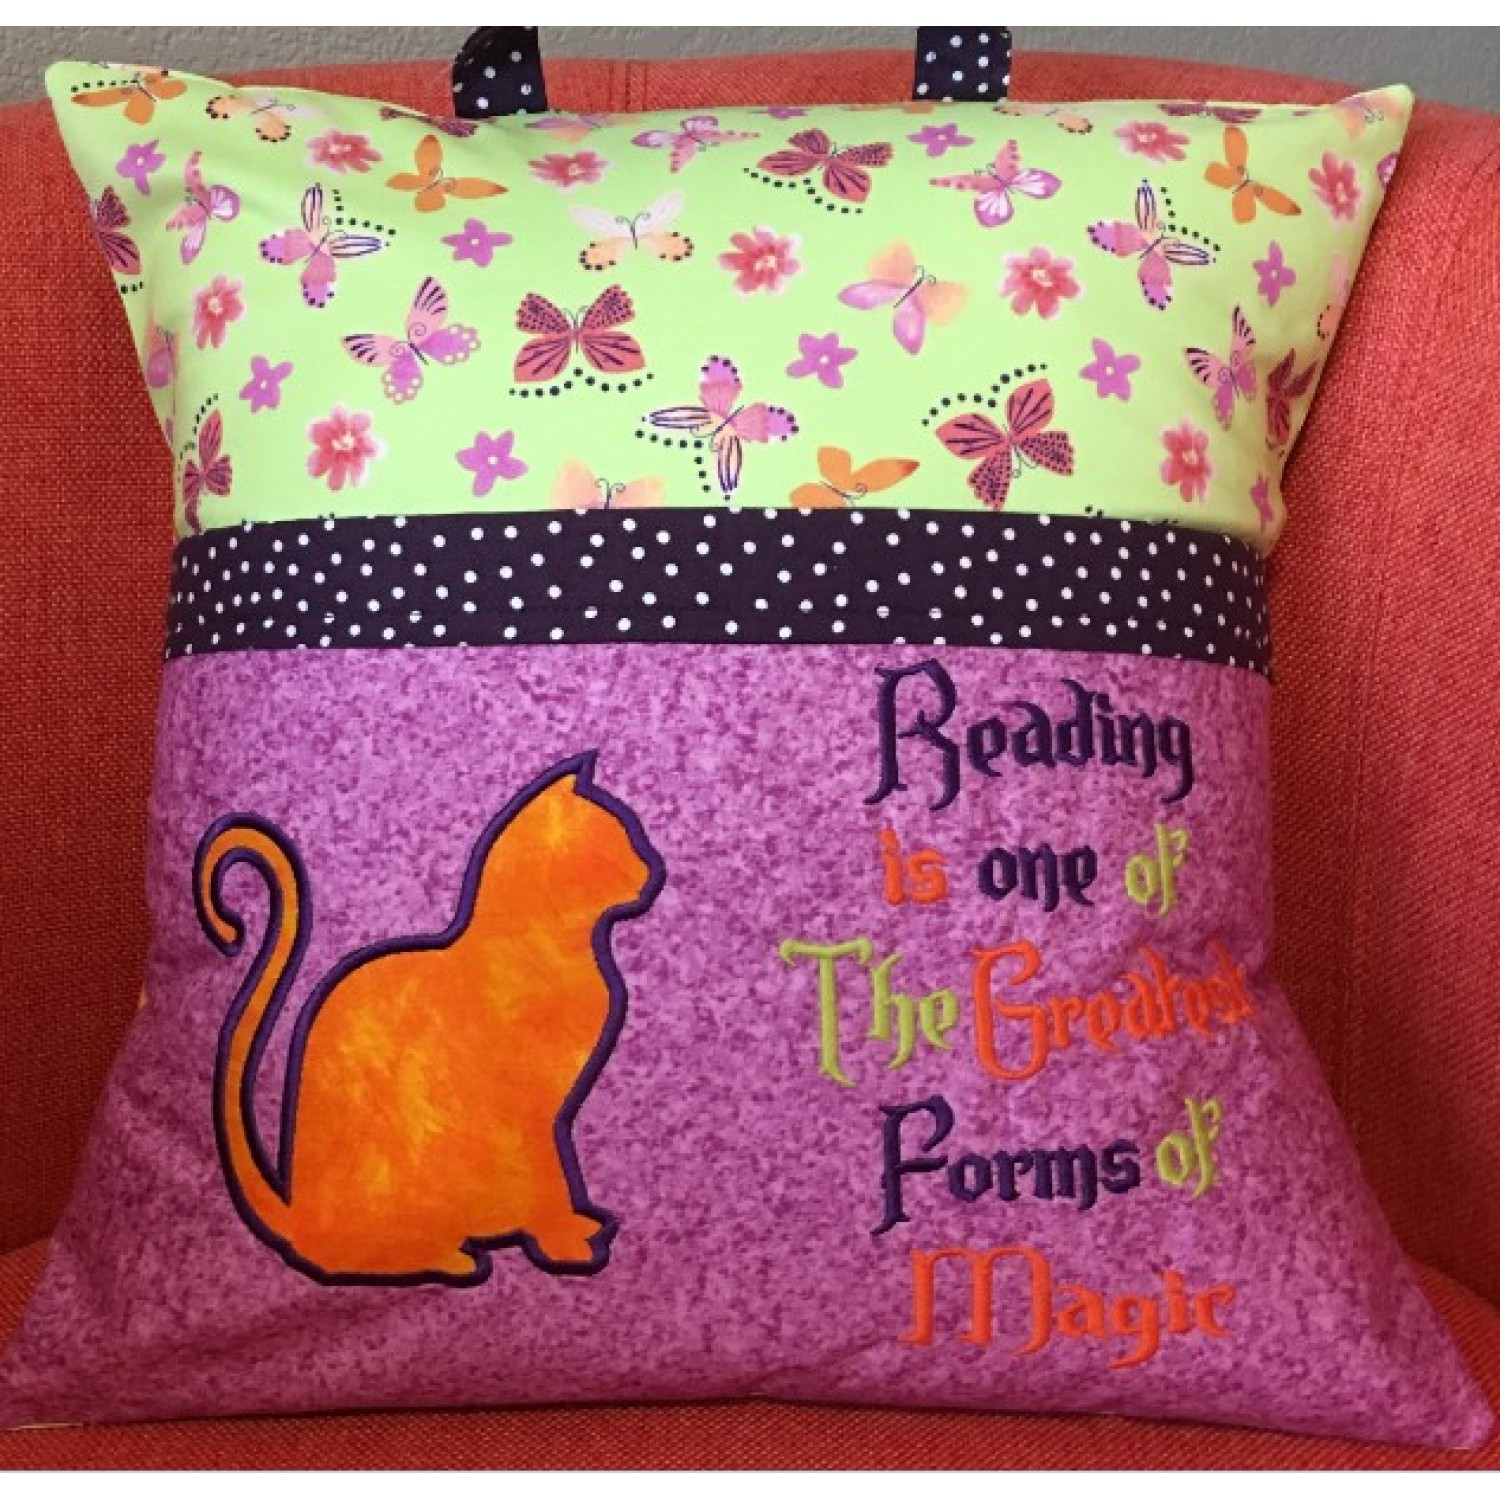 Cat Applique with Reading is one 2 designs 3 sizes